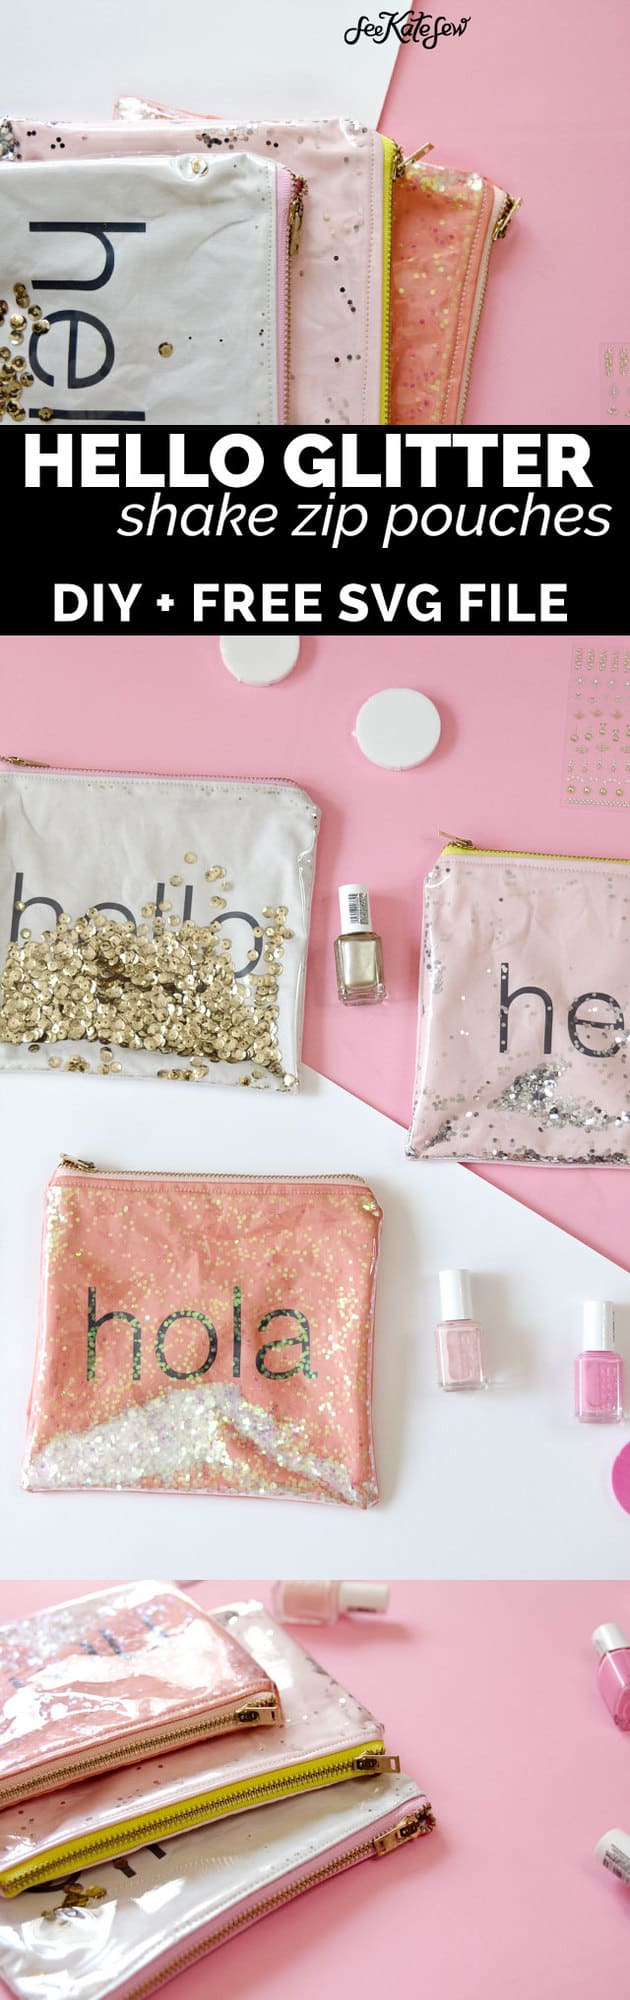 DIY GLITTER VINYL ZIPPER POUCHES | GLITTER SHAKE POUCH | diy makeup bag | diy zippered pouch | cricut projects | diy tips and tricks | diy sewing projects | sewing tips and tricks | sewing tutorials | how to make a zippered pouch || See Kate Sew